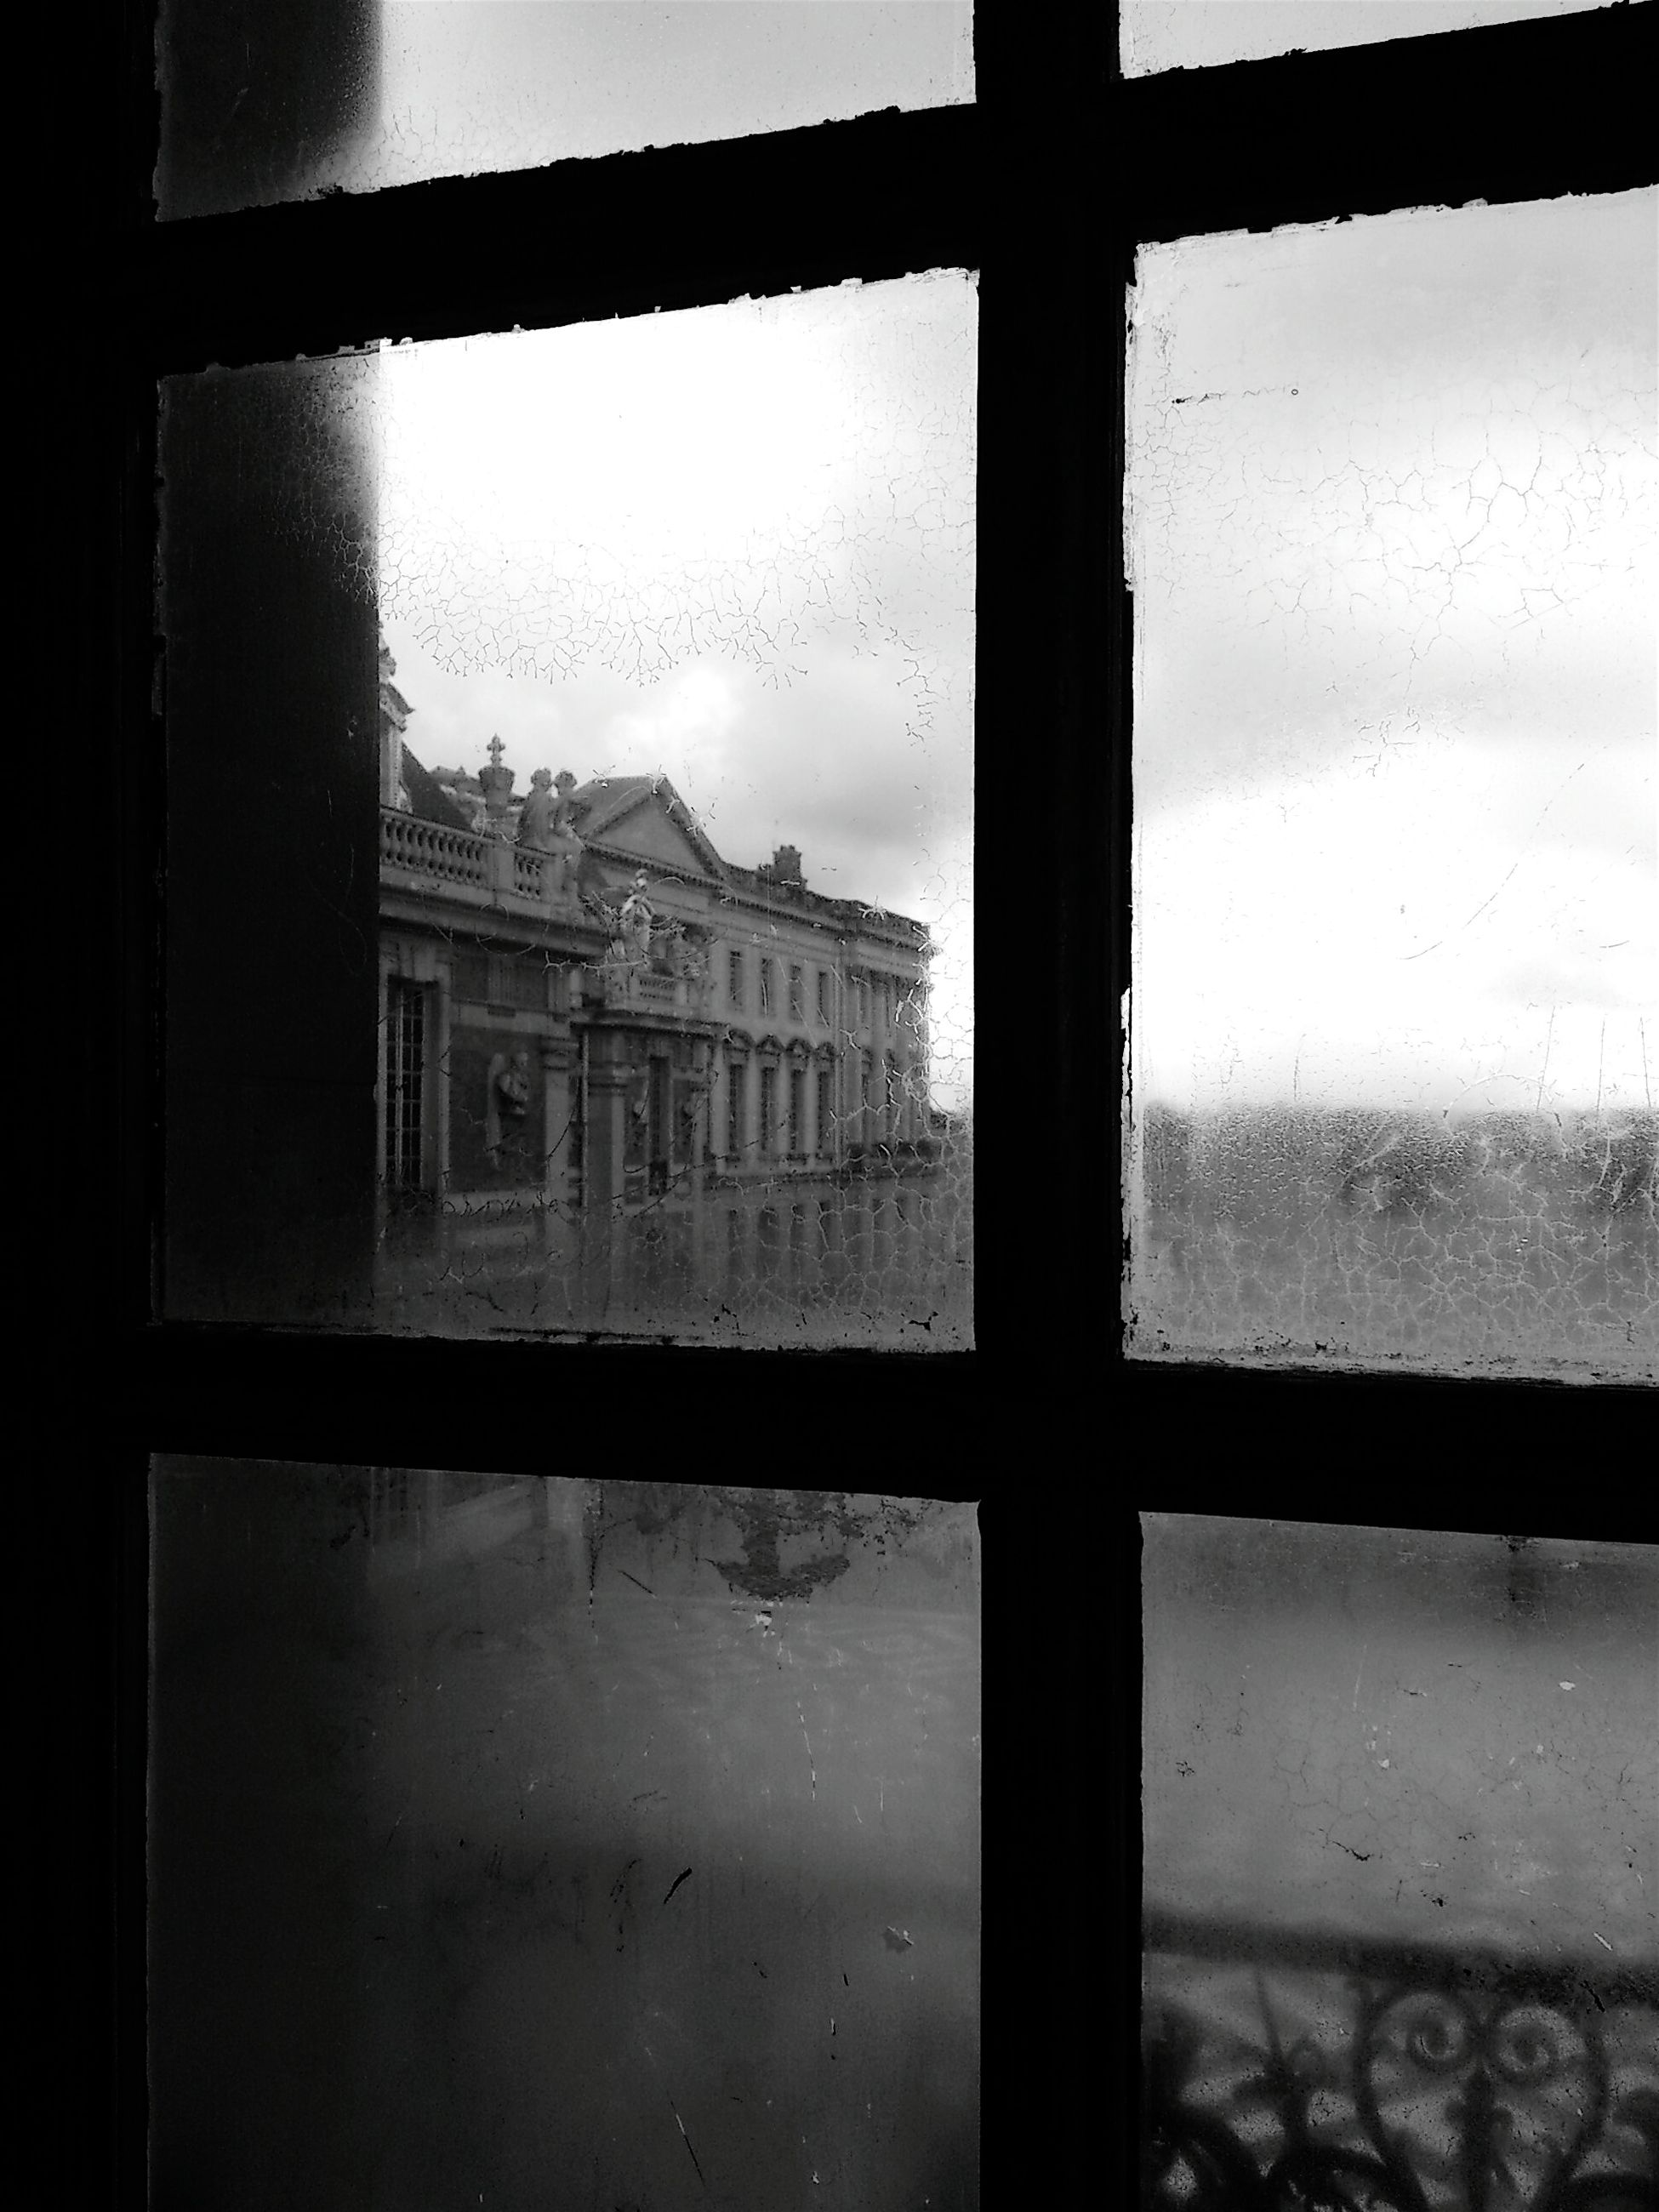 window, architecture, indoors, glass - material, built structure, transparent, building exterior, sky, glass, day, abandoned, old, closed, no people, cloud - sky, reflection, building, weather, house, window frame